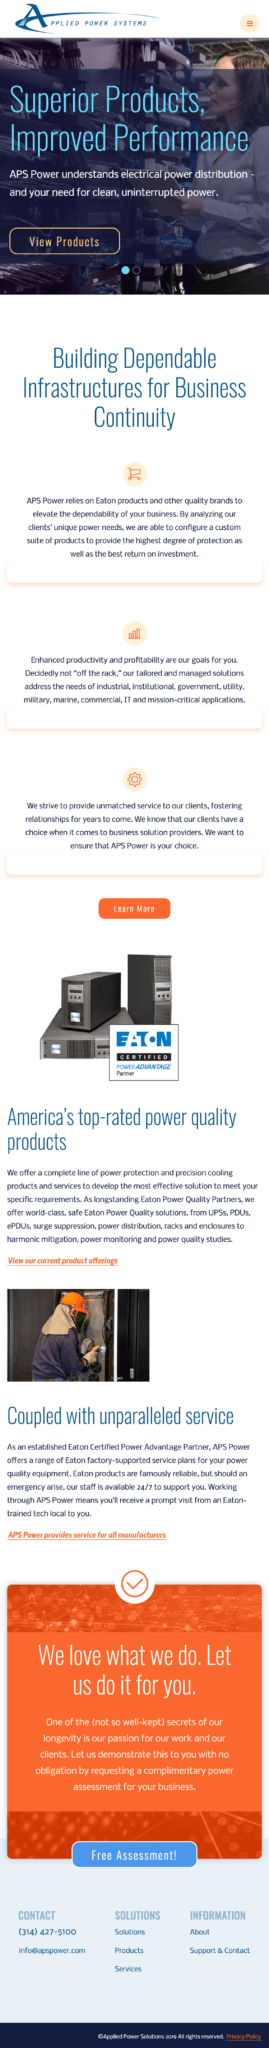 Mobile screenshot of the redesigned homepage for Applied Power Systems